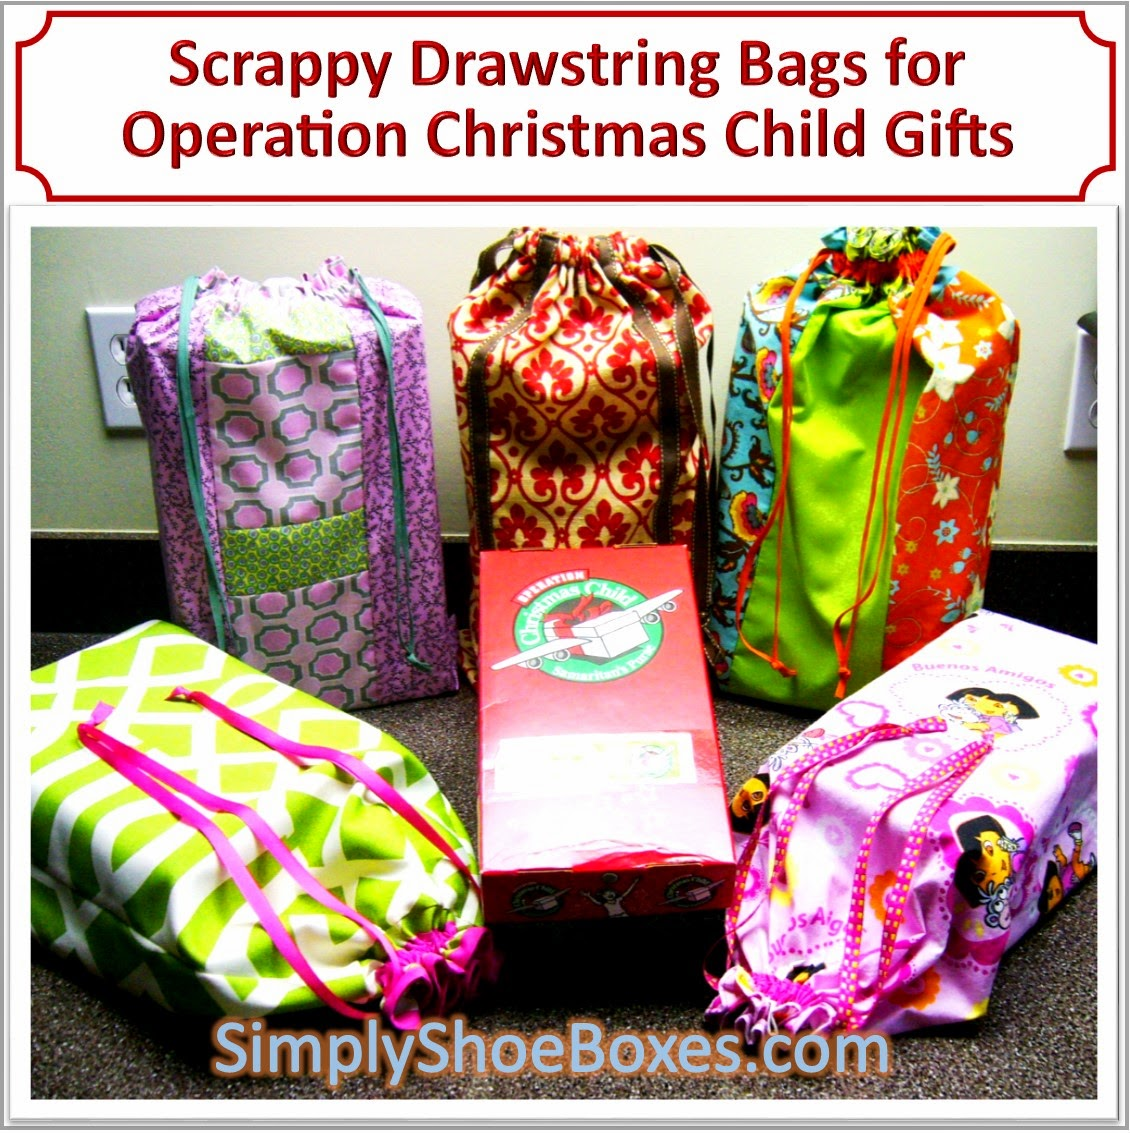 Simply Shoeboxes: Scrappy Drawstring Tote Bags for Operation ...